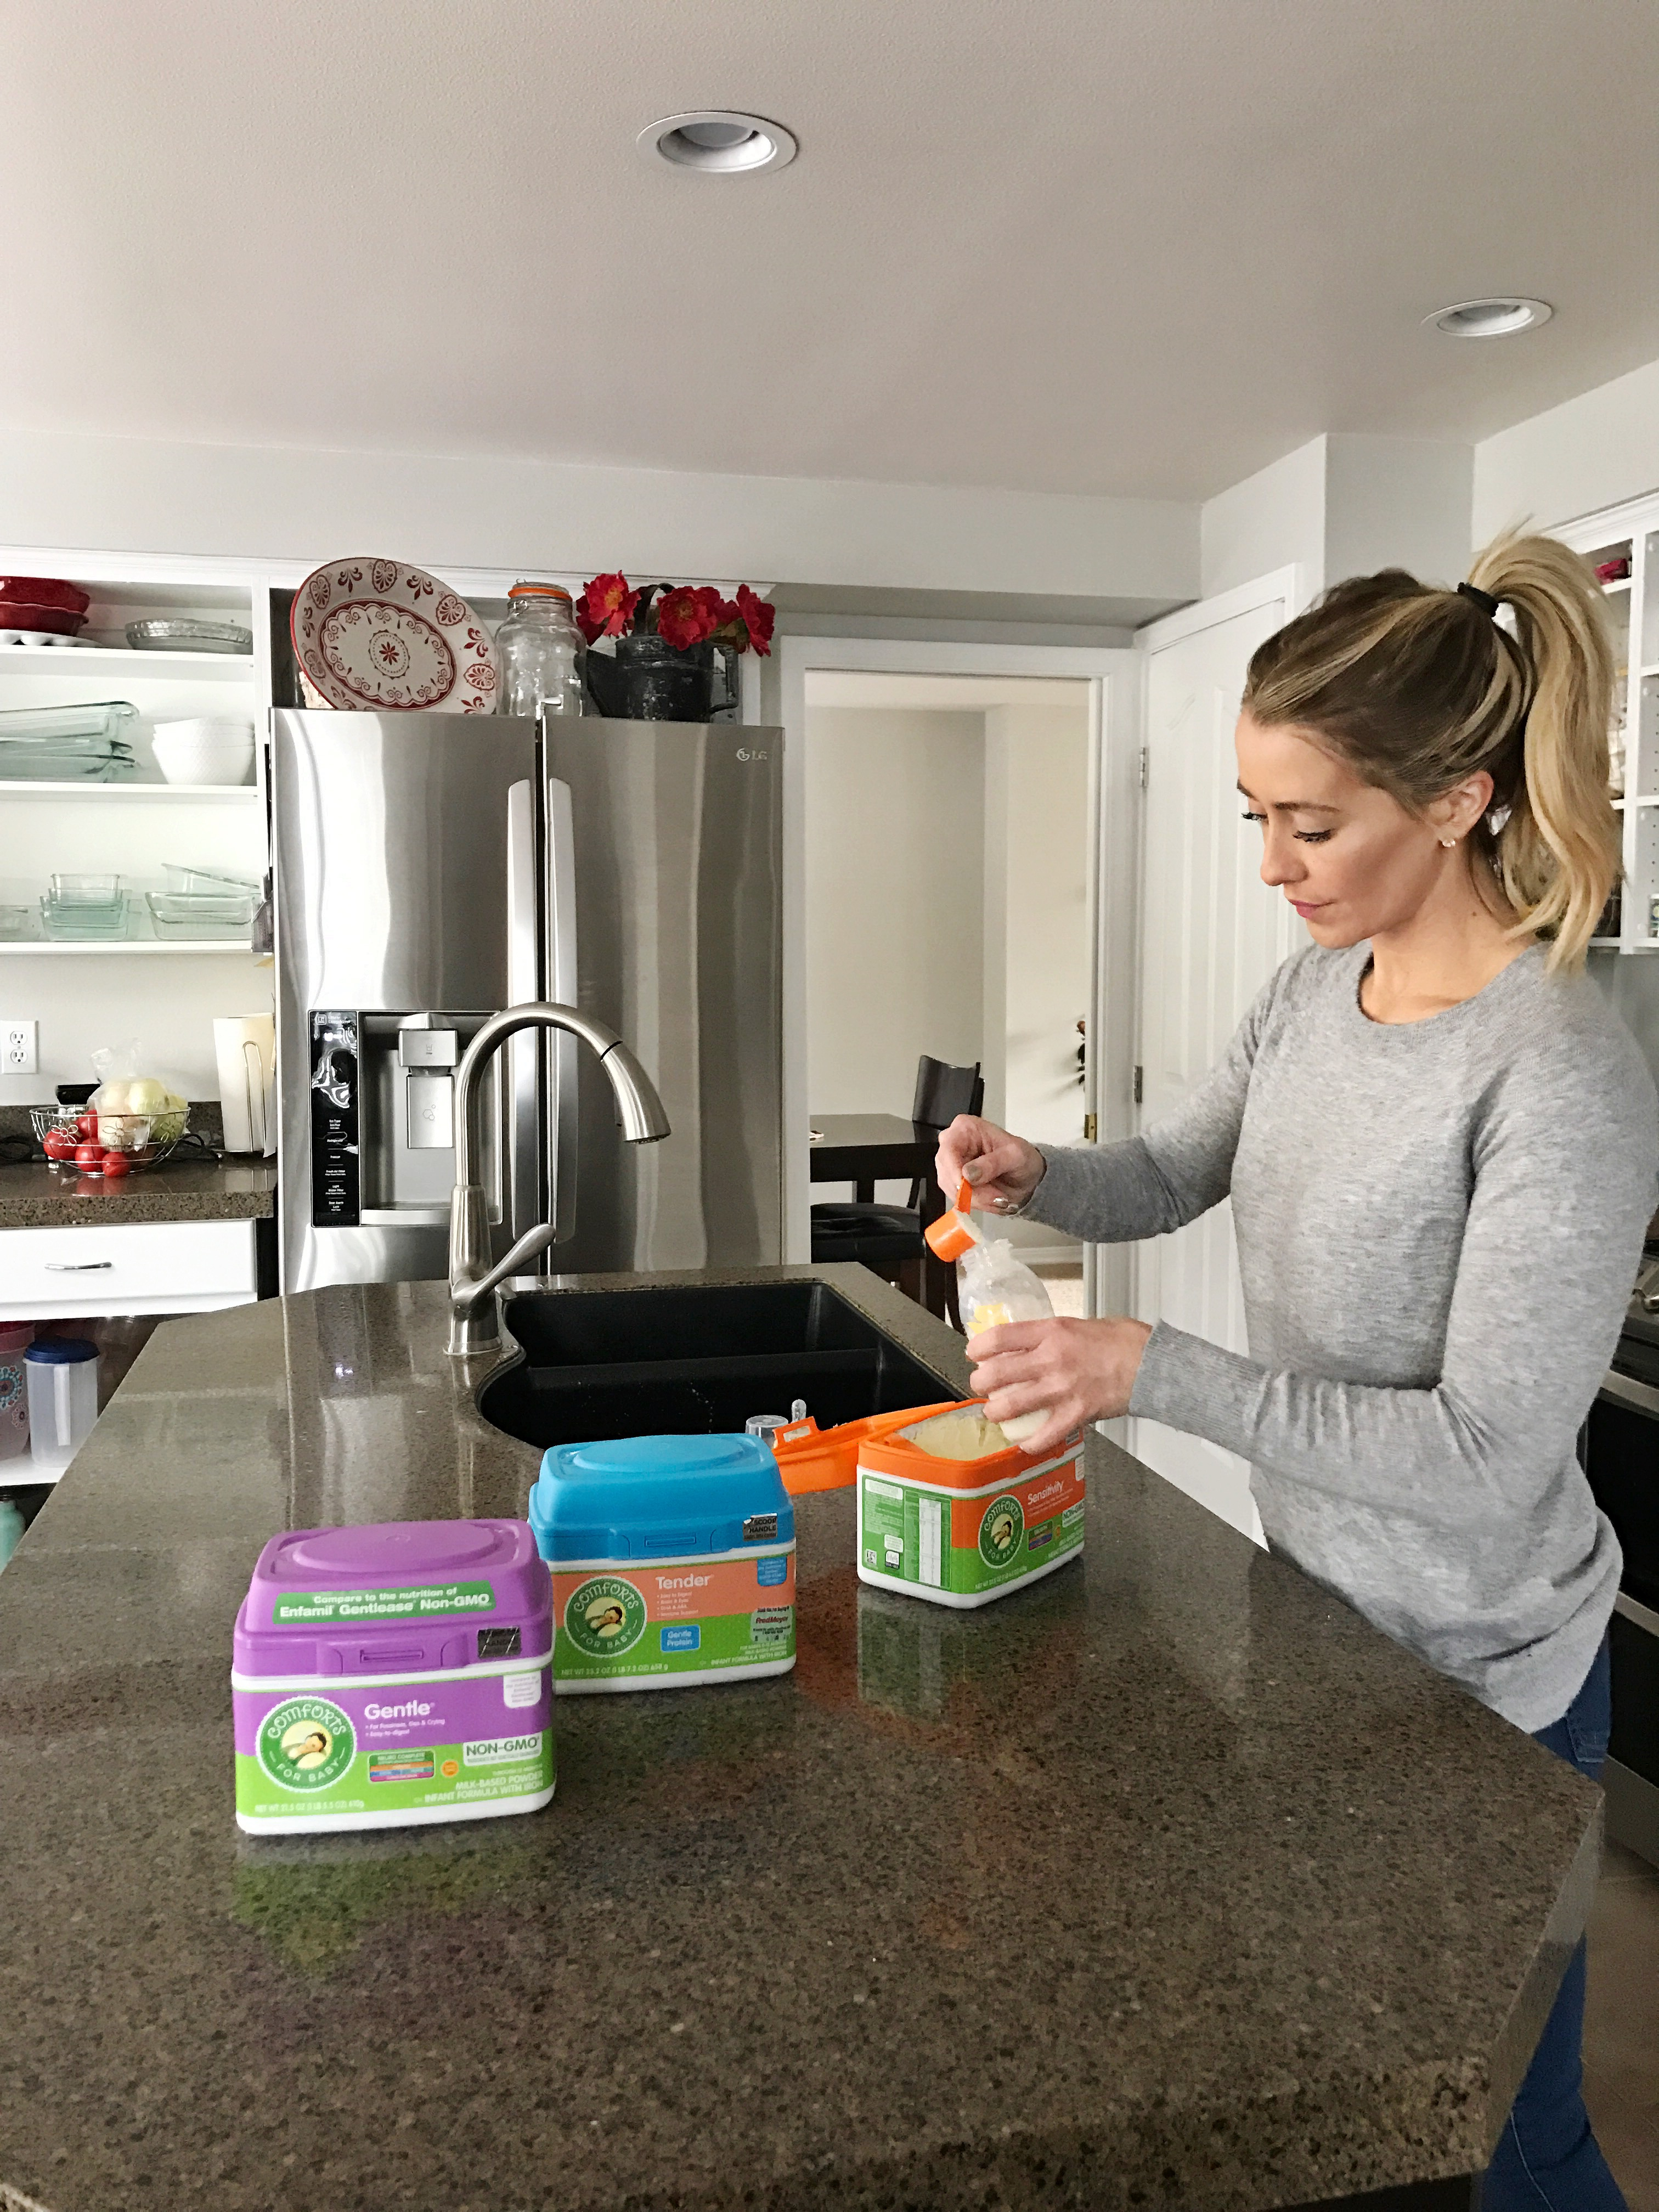 Comforts Formula by popular San Francisco mom blogger For the Love